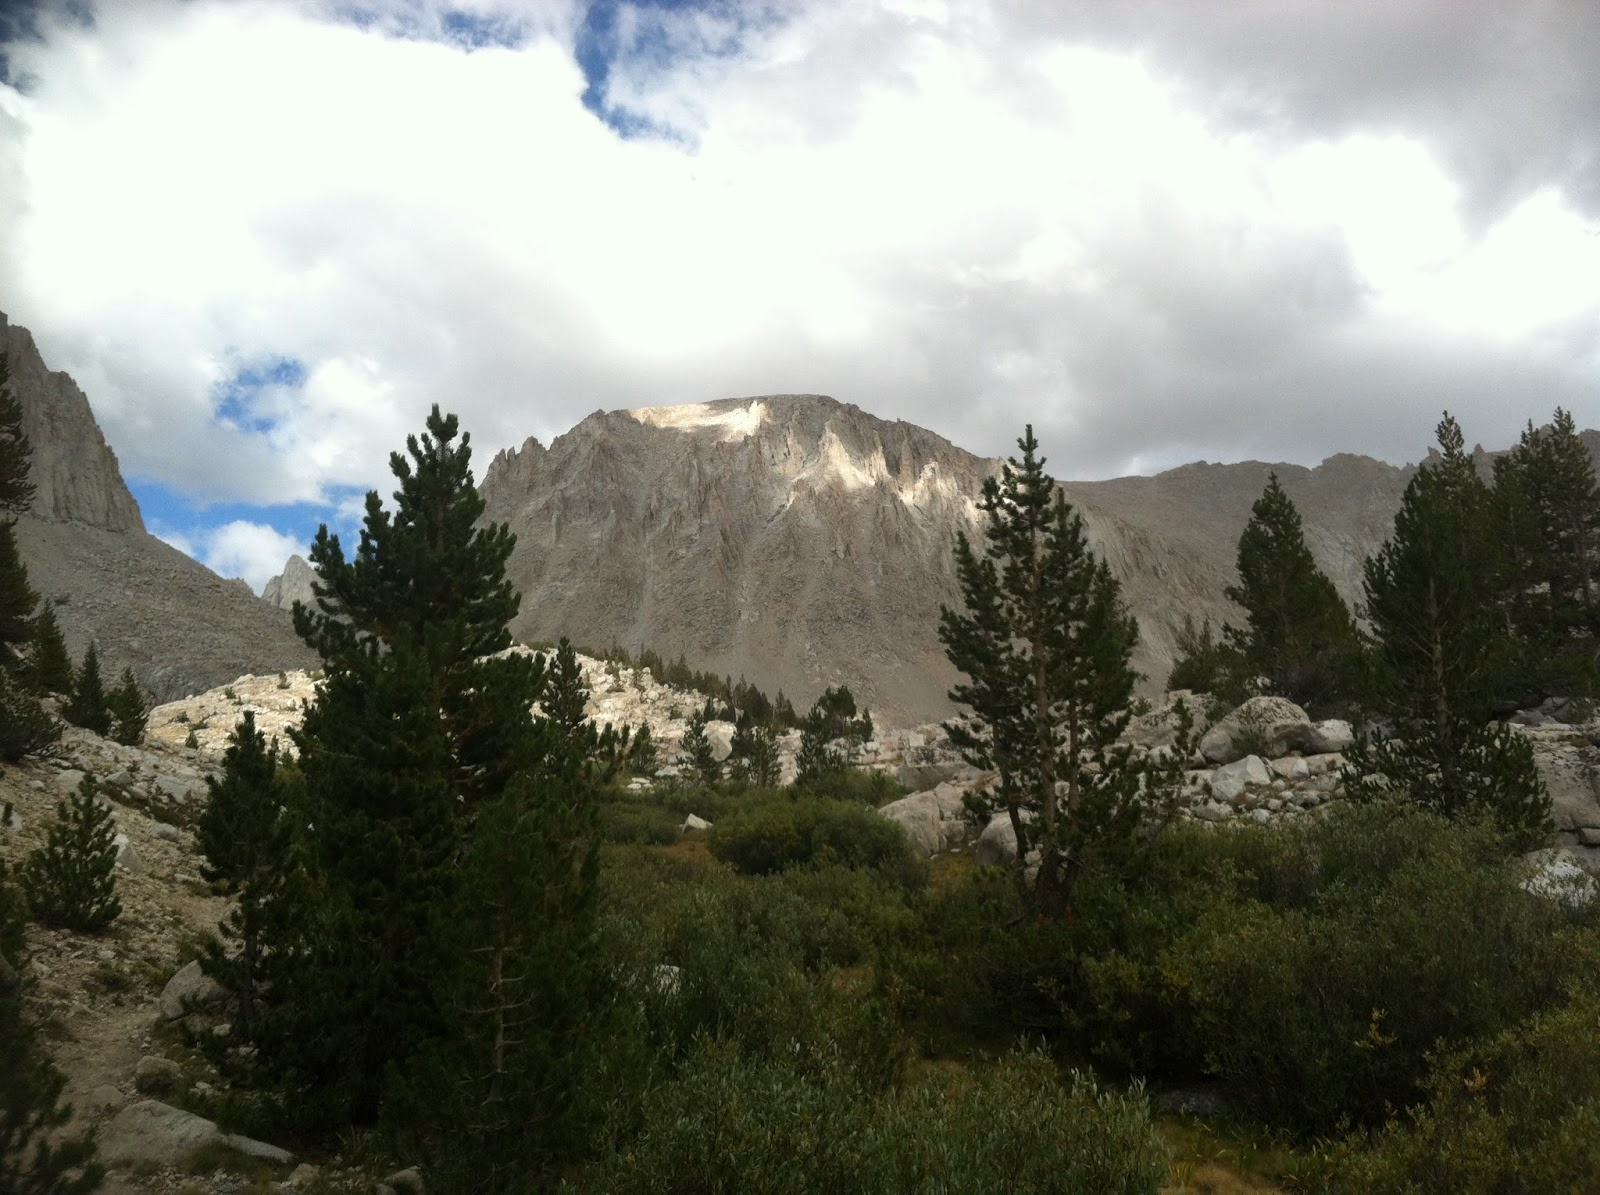 mt whitney from the west - trans-sierra xtreme challenge day 5